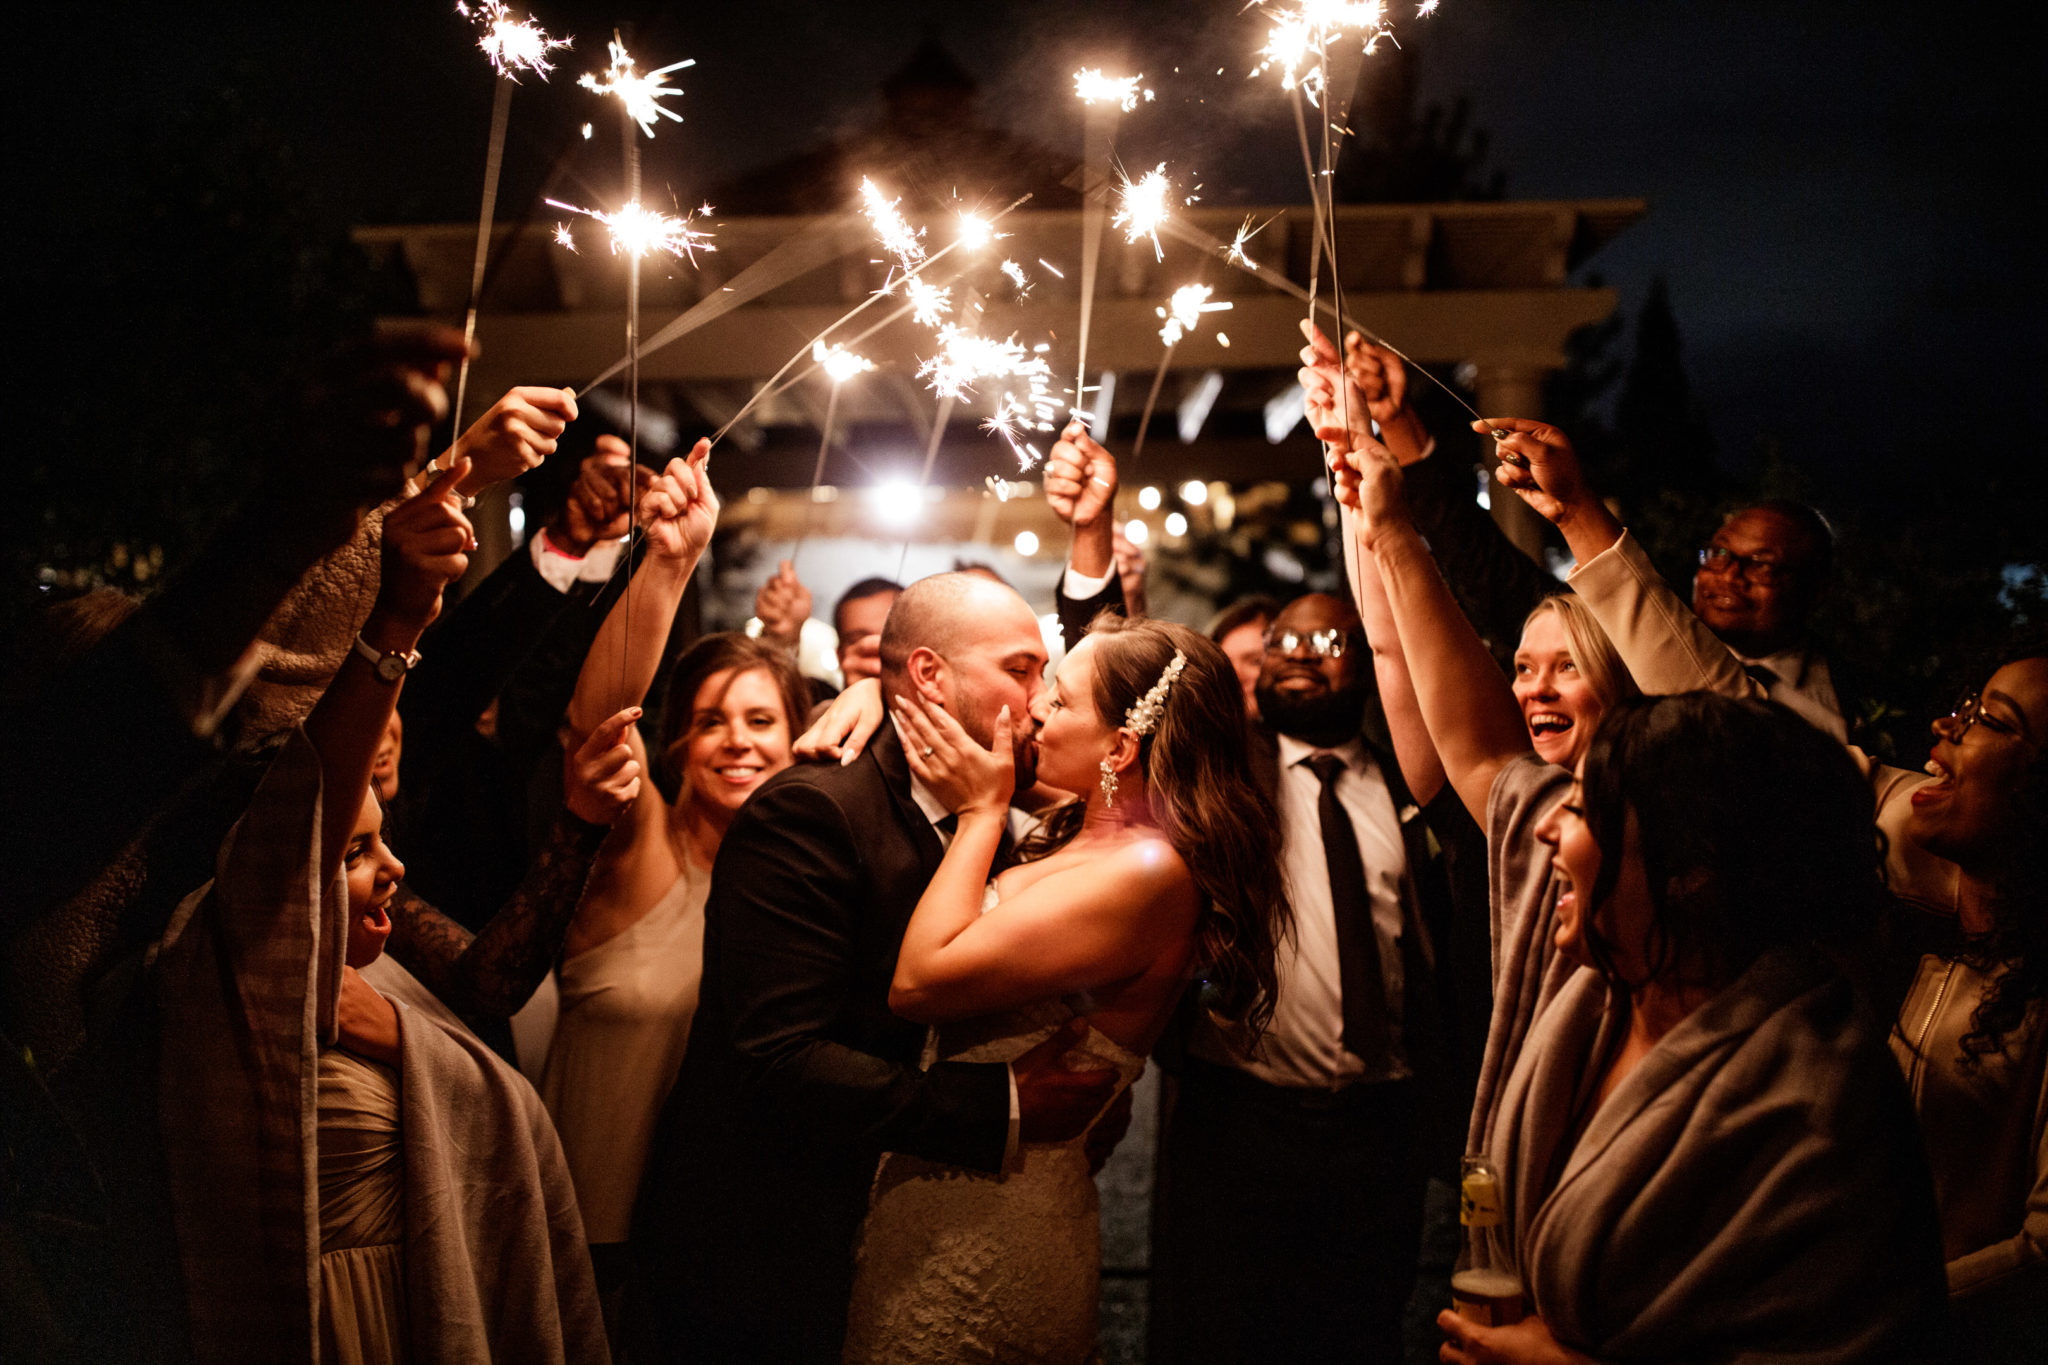 club-roma-wedding-niagara-sparklers-guests